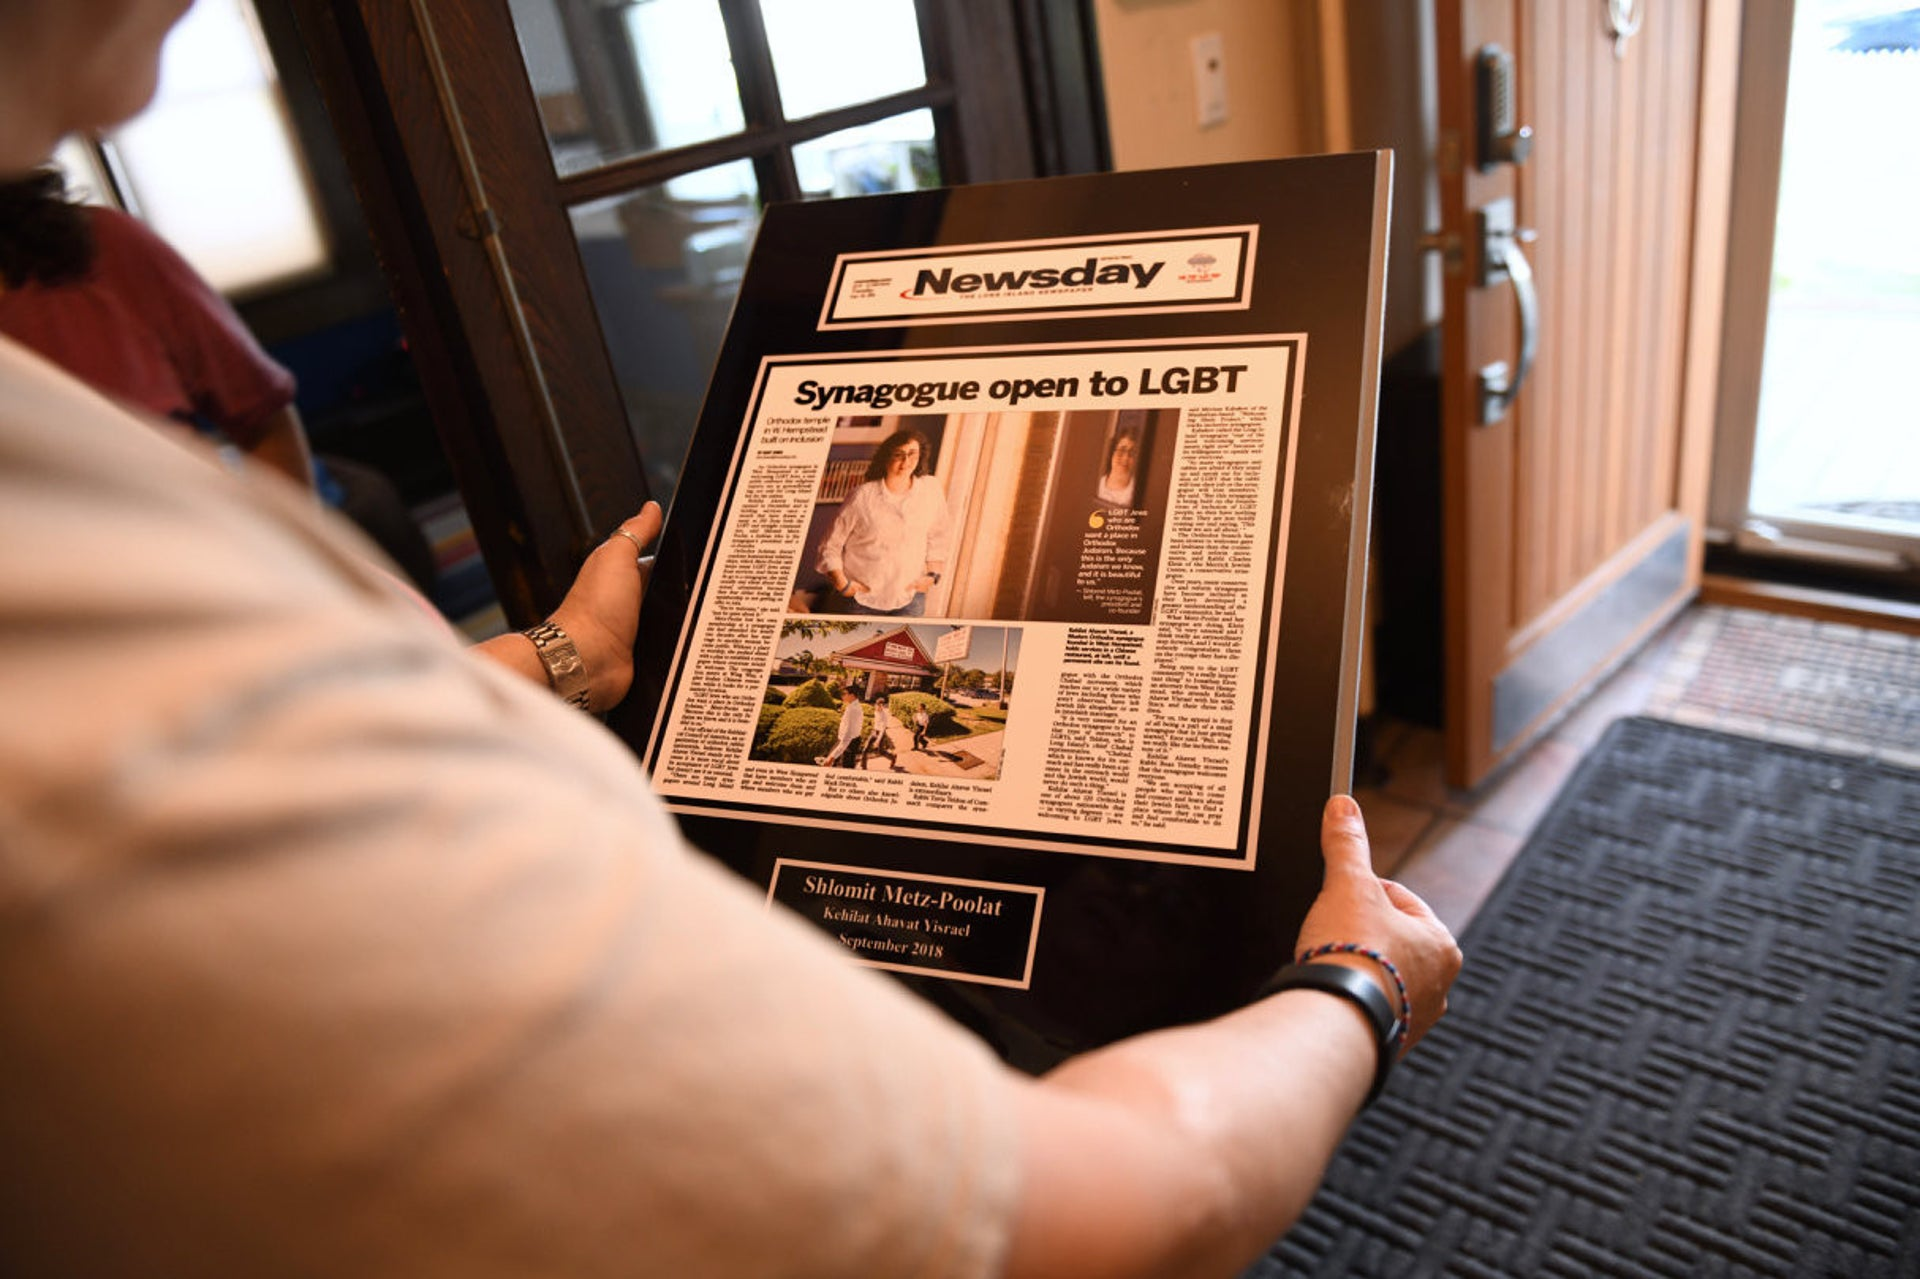 Shlomit Metz-Poolat holding a framed copy of a newspaper story about the opening of Kehilat Ahavat Yisrael in West Hempstead.